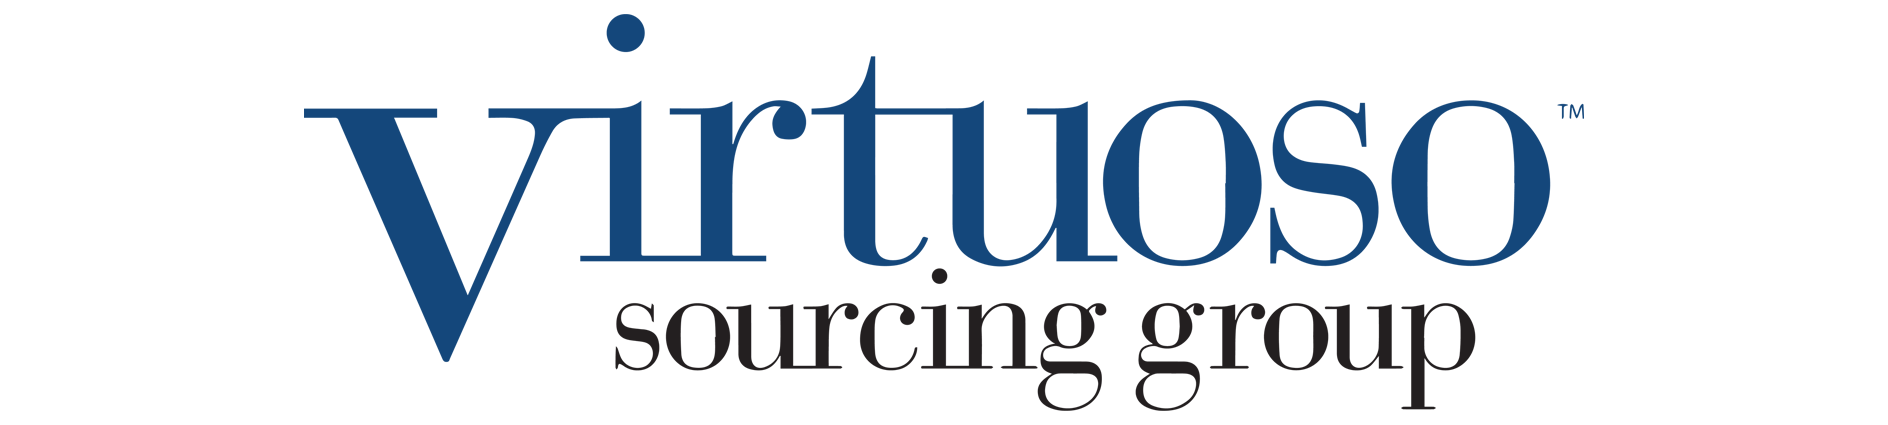 Virtuoso Sourcing Group | Connecting Organizations with Their Customers